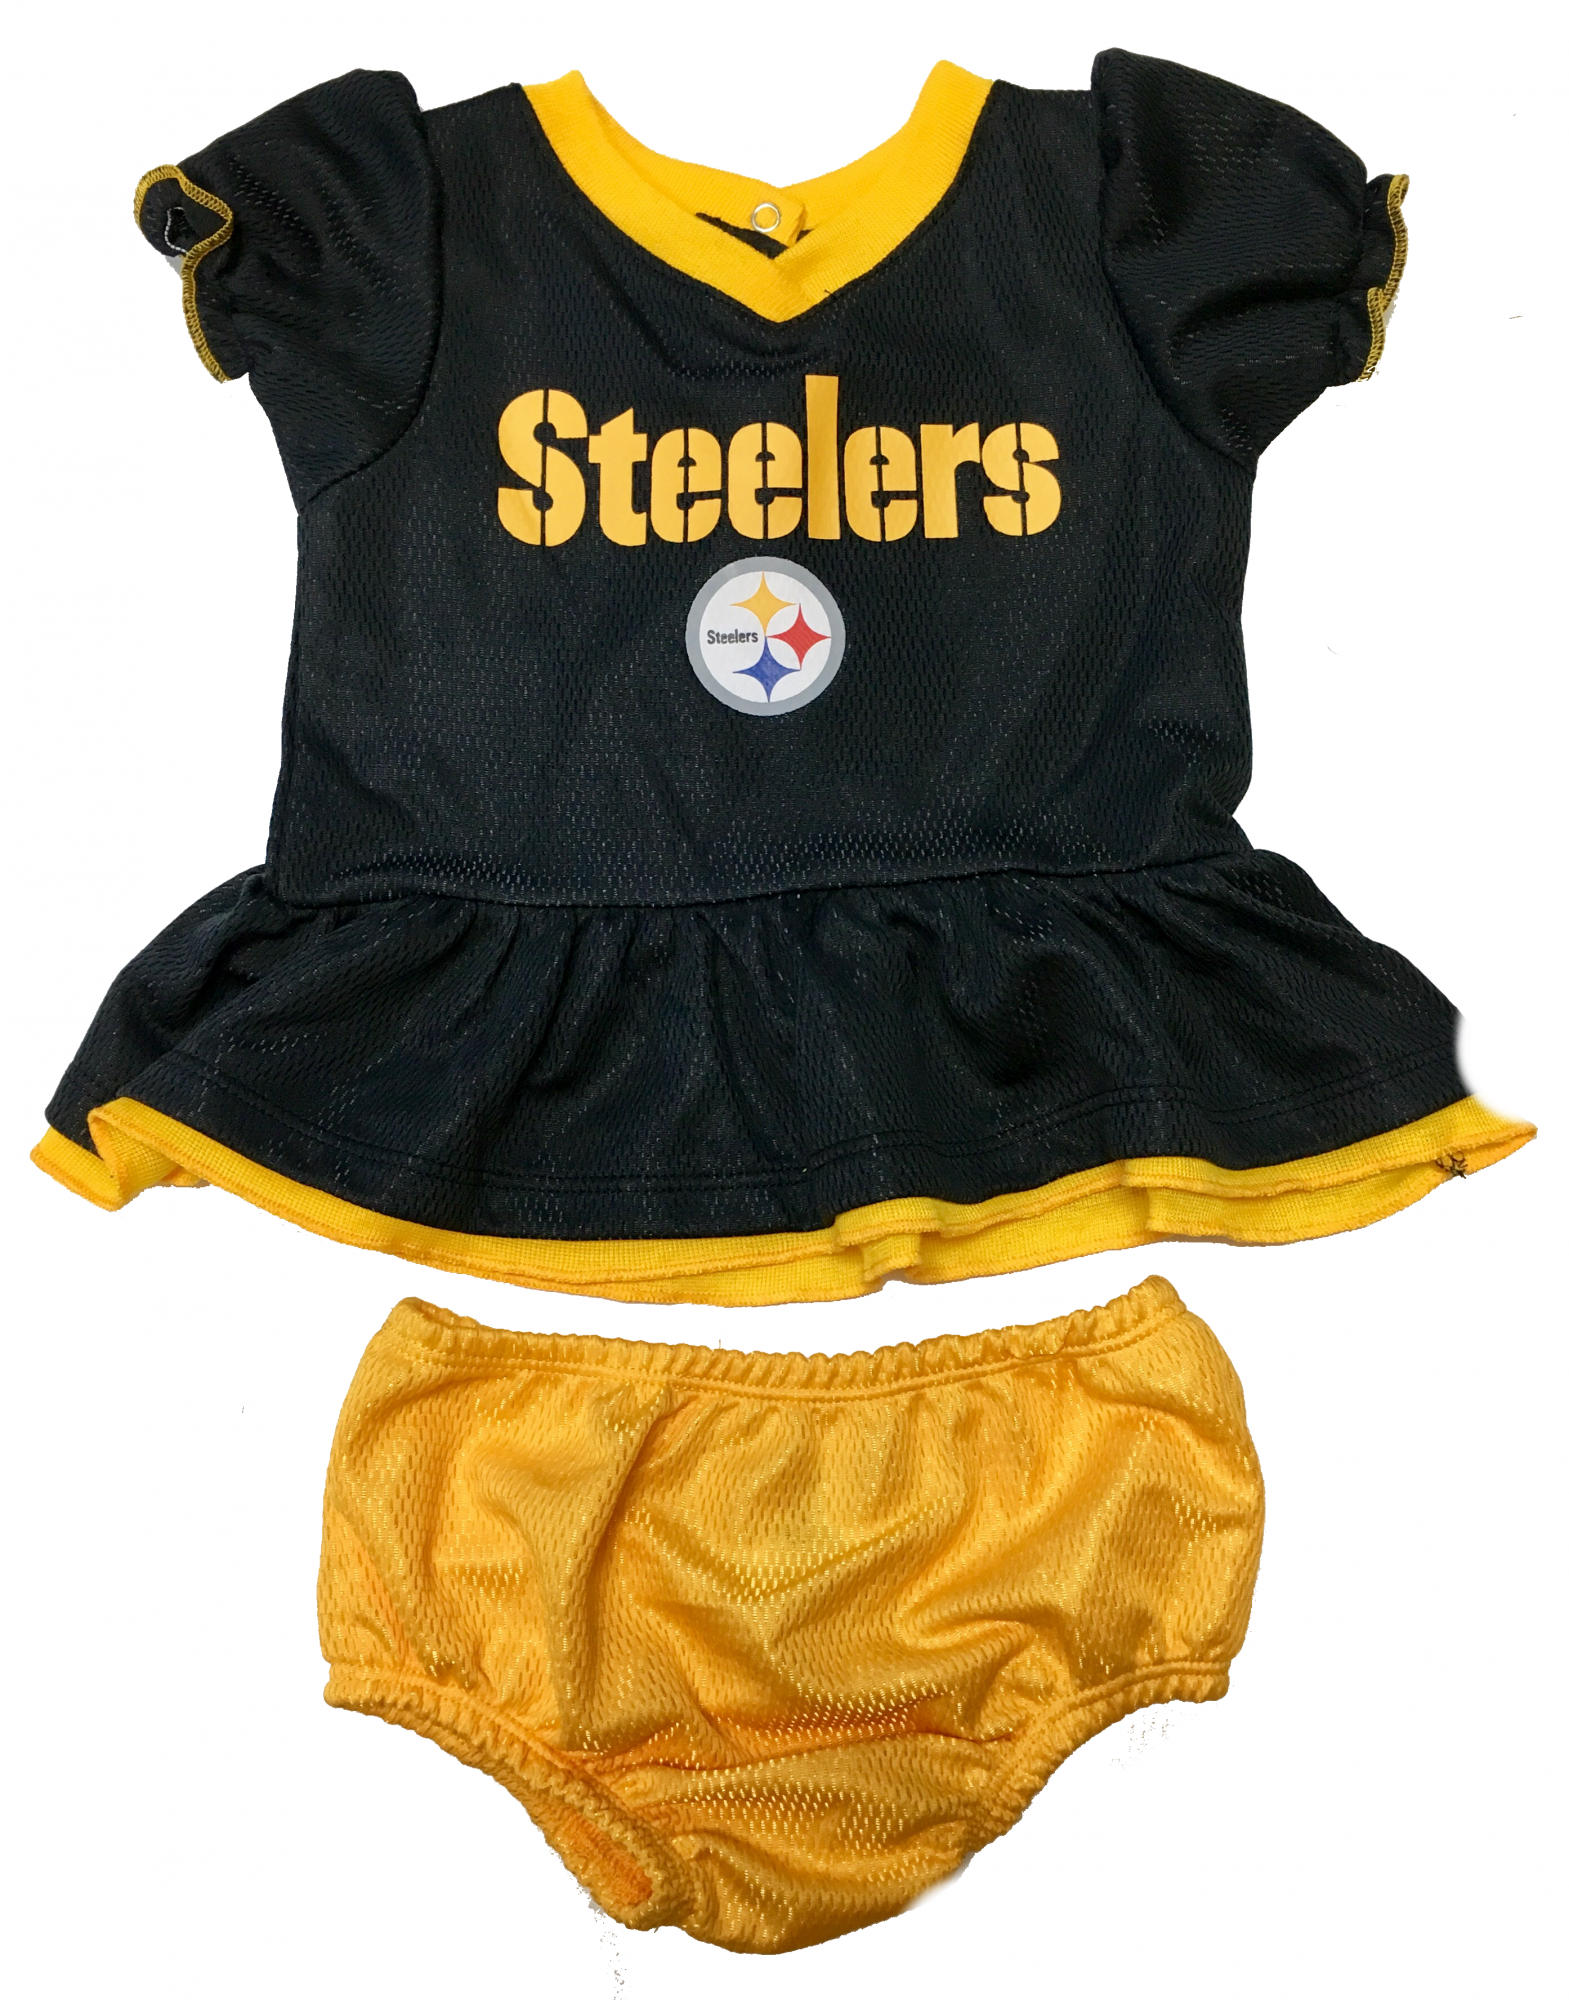 NFL-Steelers-baby-player-jersey-dress.PNG